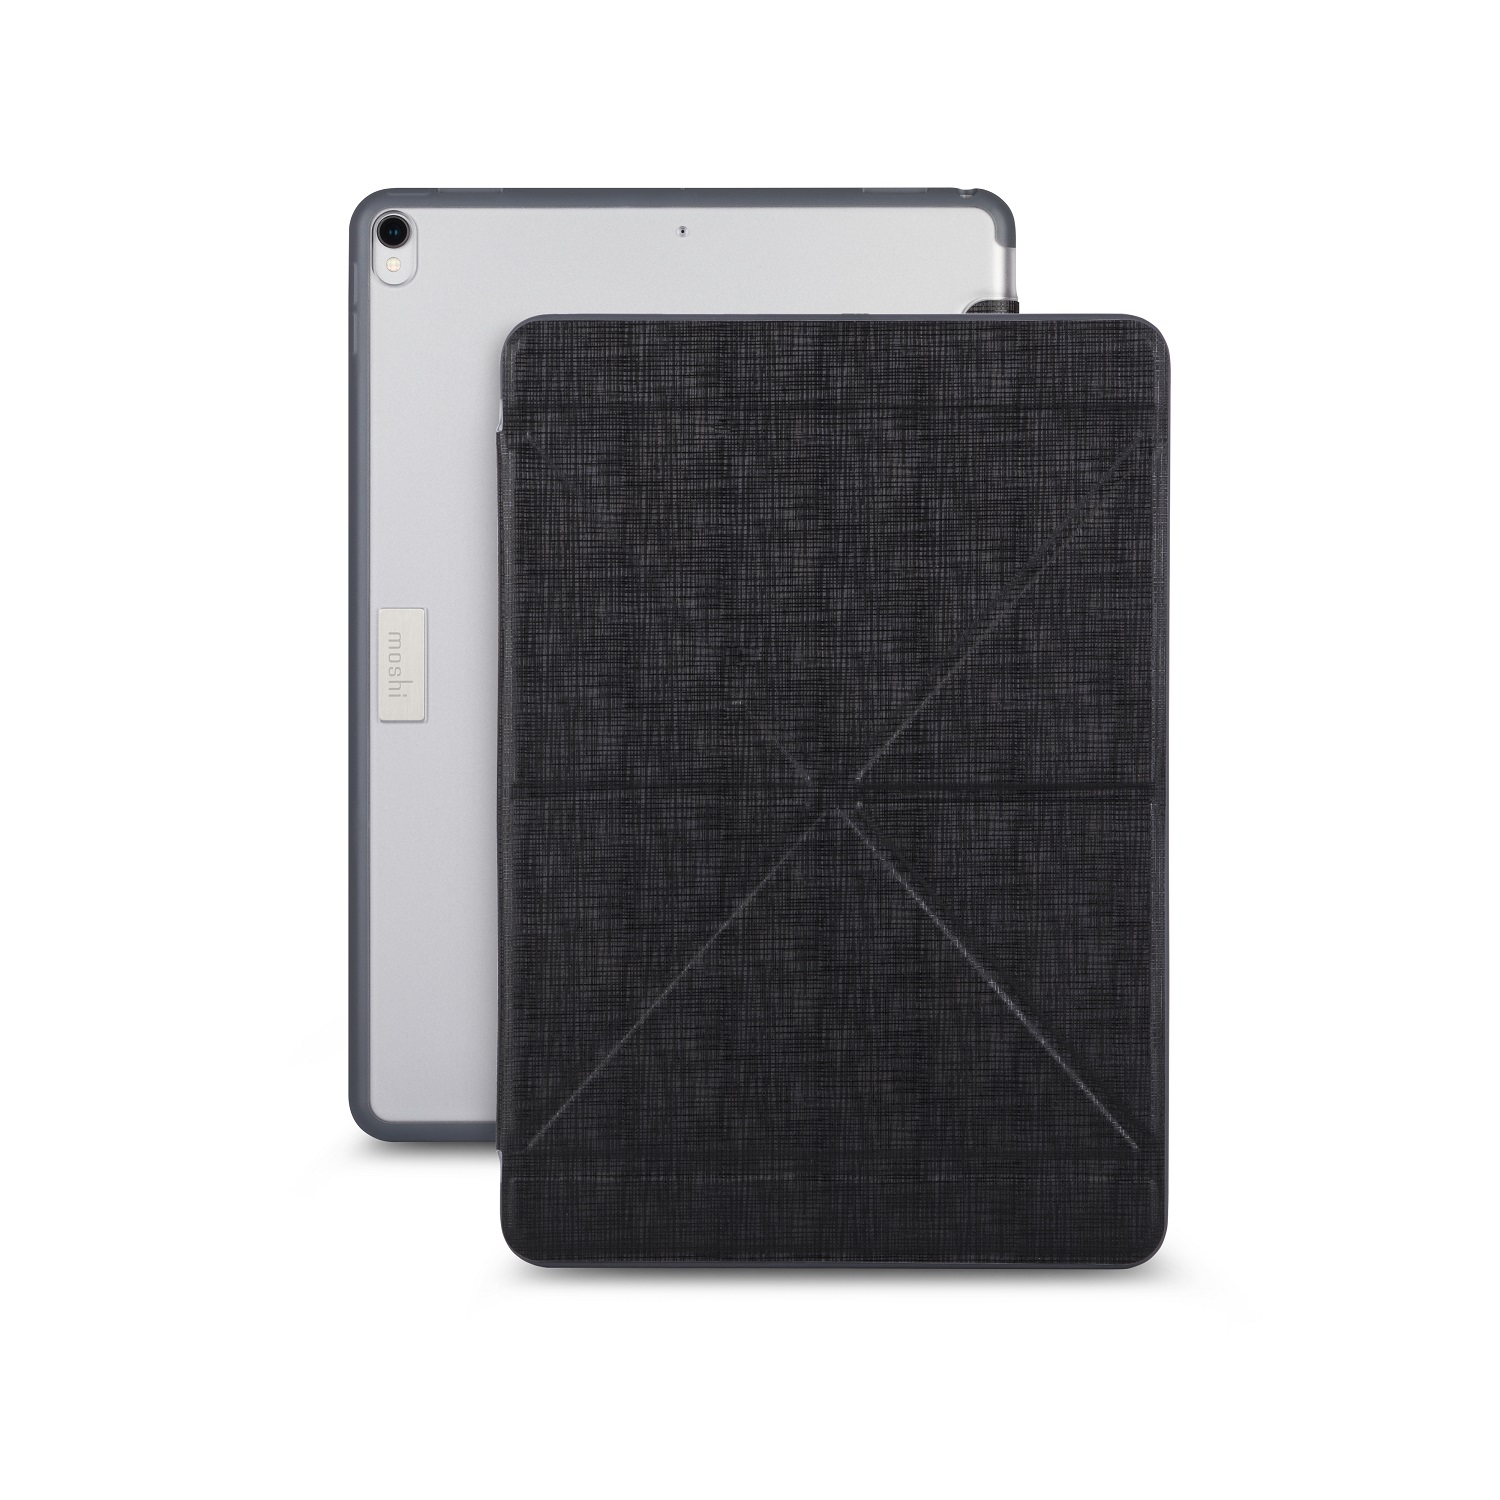 Moshi Versa Case for iPad Pro 10.5 inch